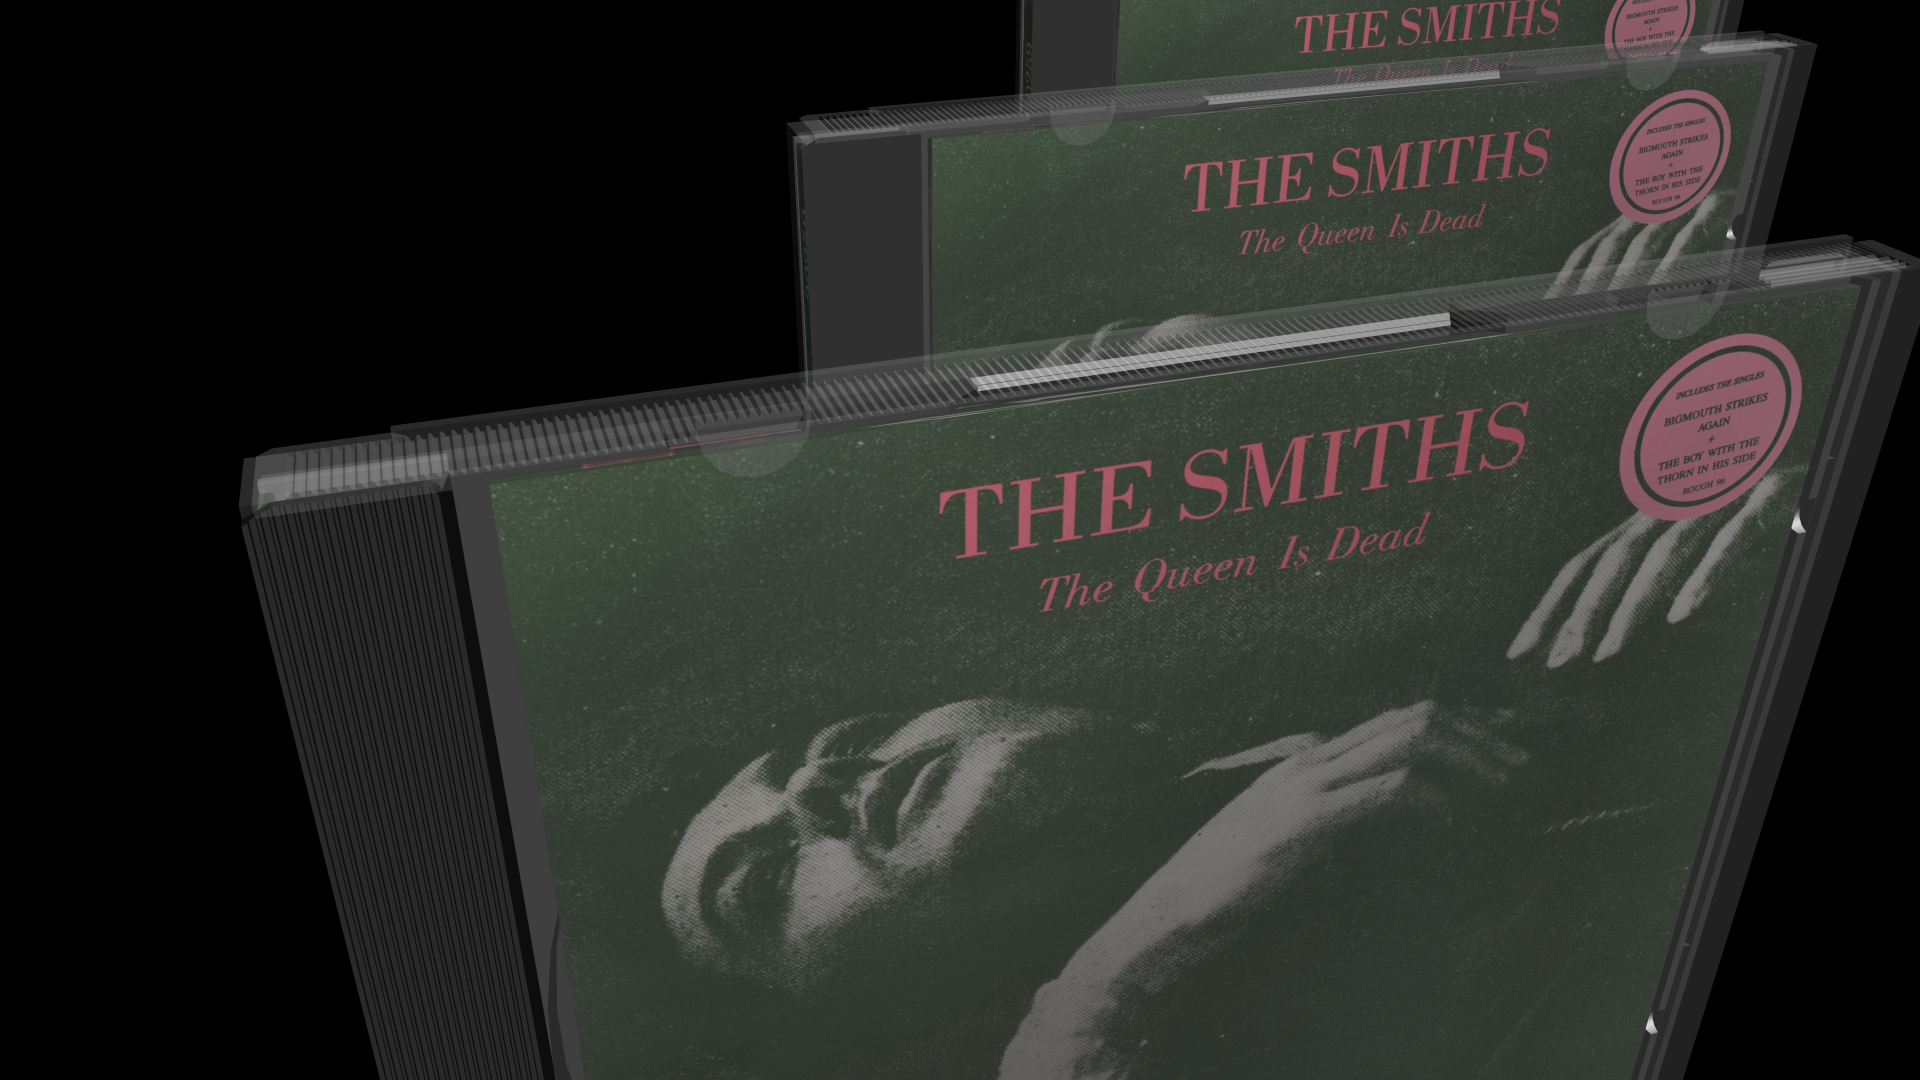 3D Model CD Jewel Cases: The Smiths: The Queen is Dead